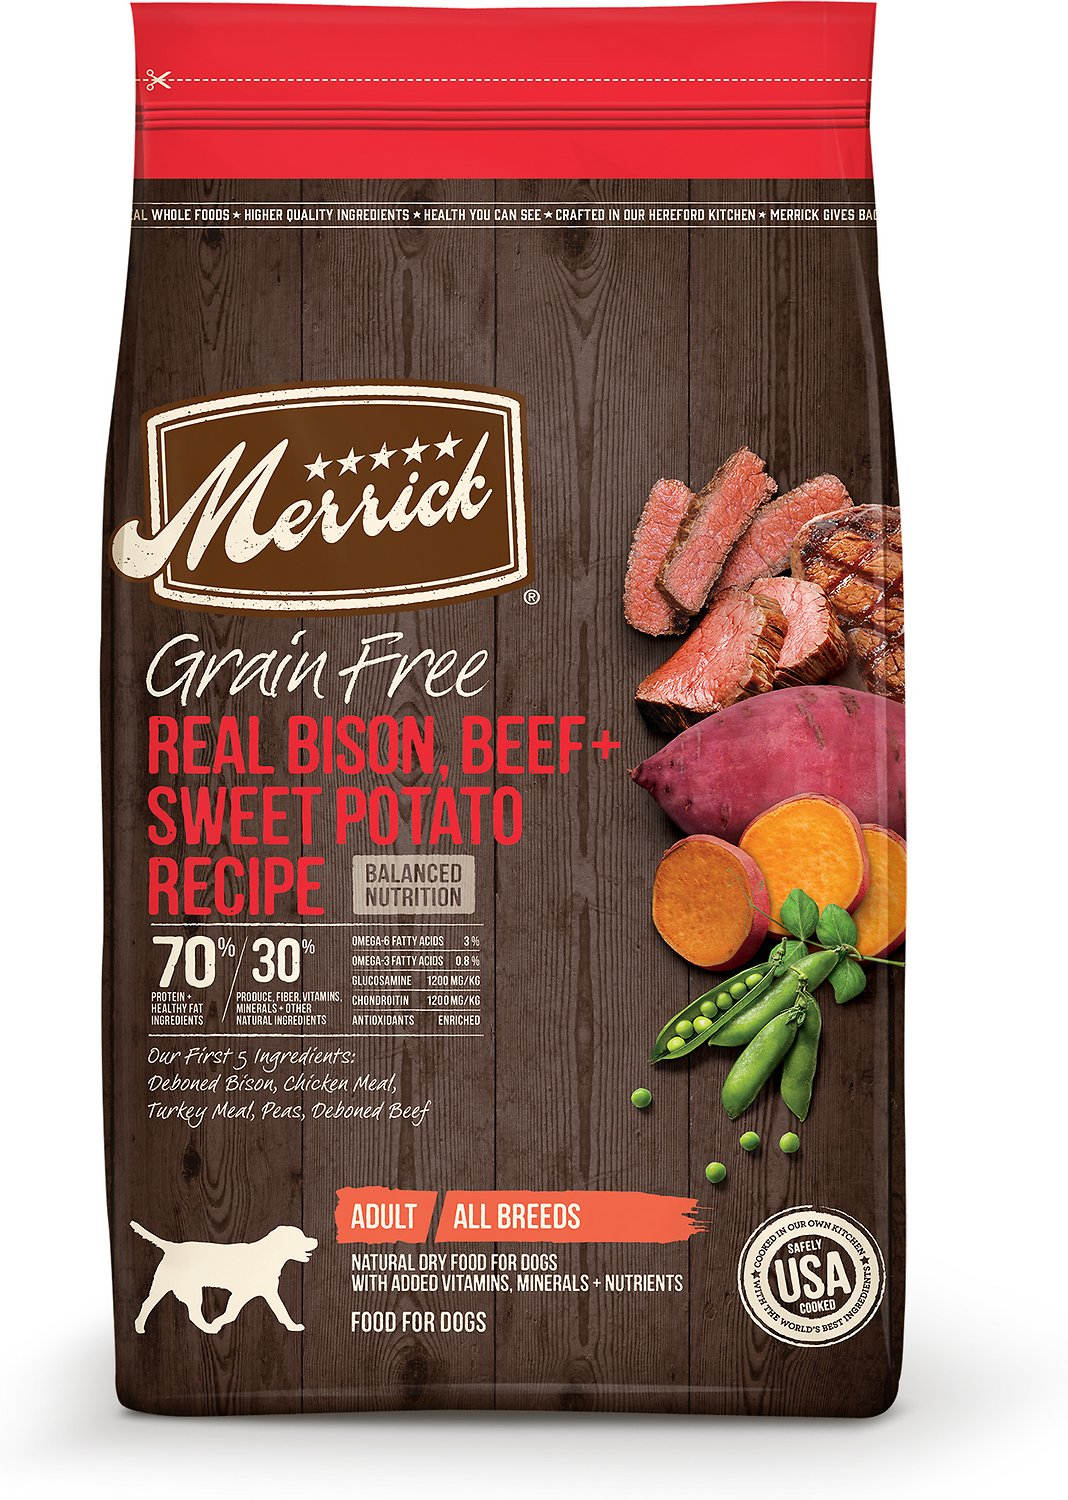 Merrick Real Bison, Beef + Sweet Potato Recipe Grain-Free Dry Dog Food Image